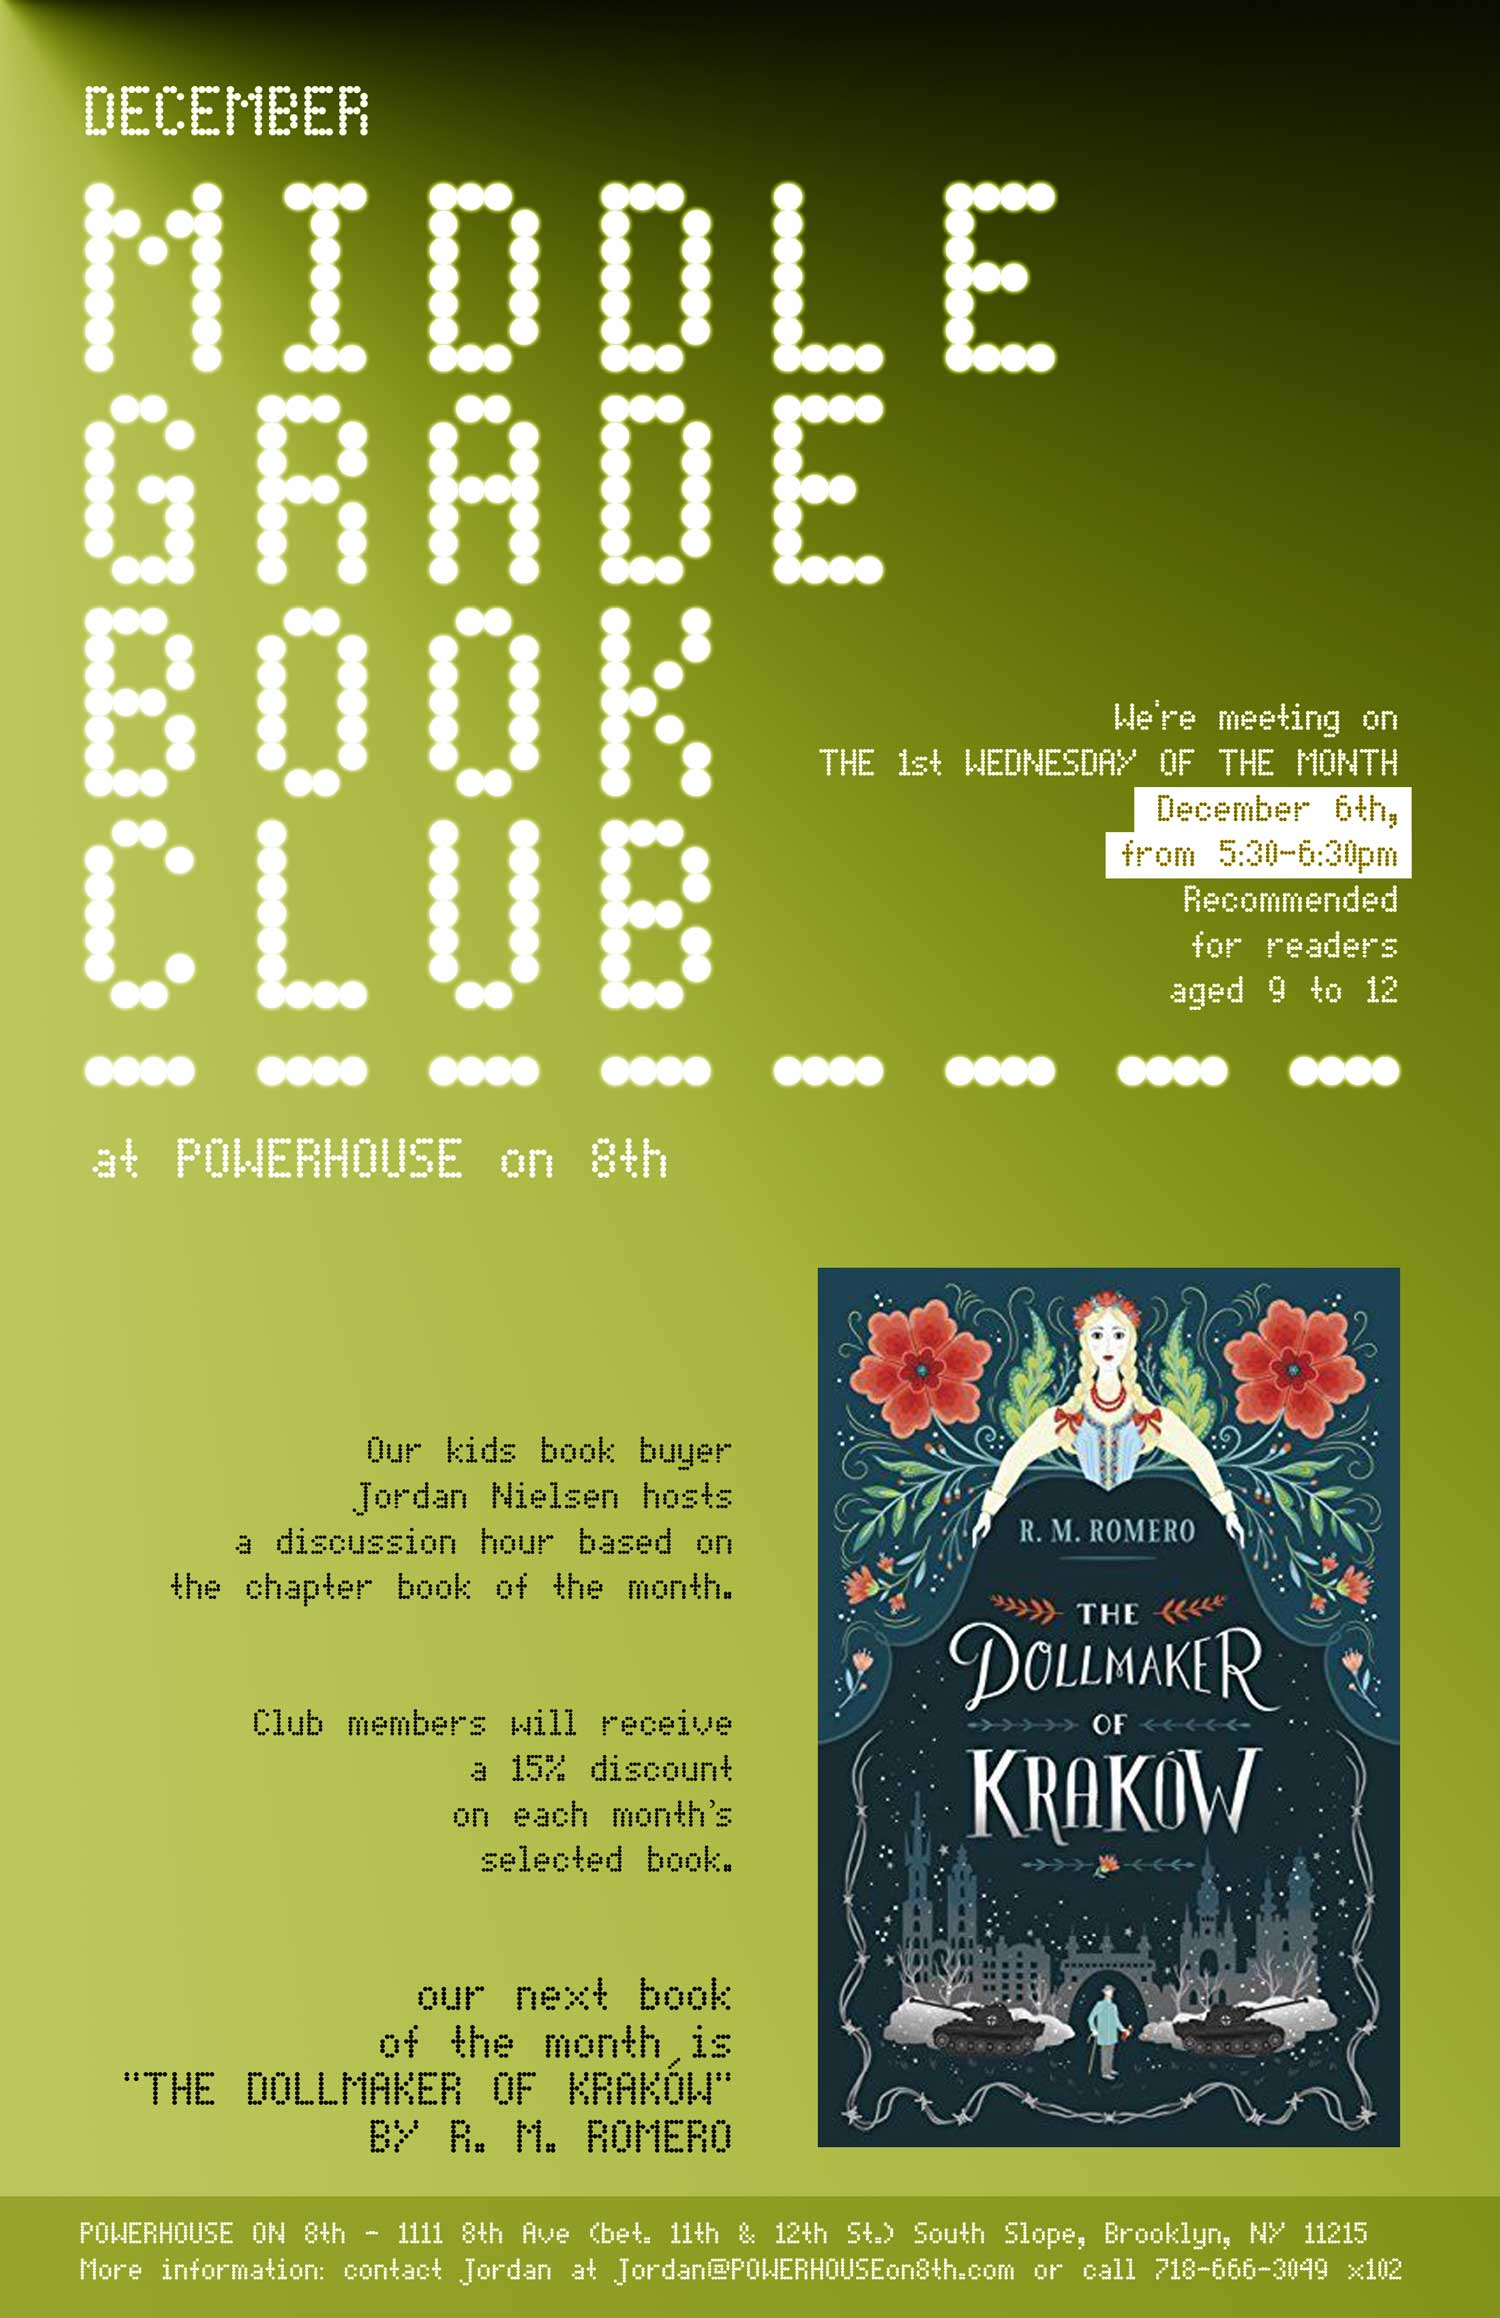 Middle Grade Book Club: The Dollmaker of Krakow by R. M. Romero